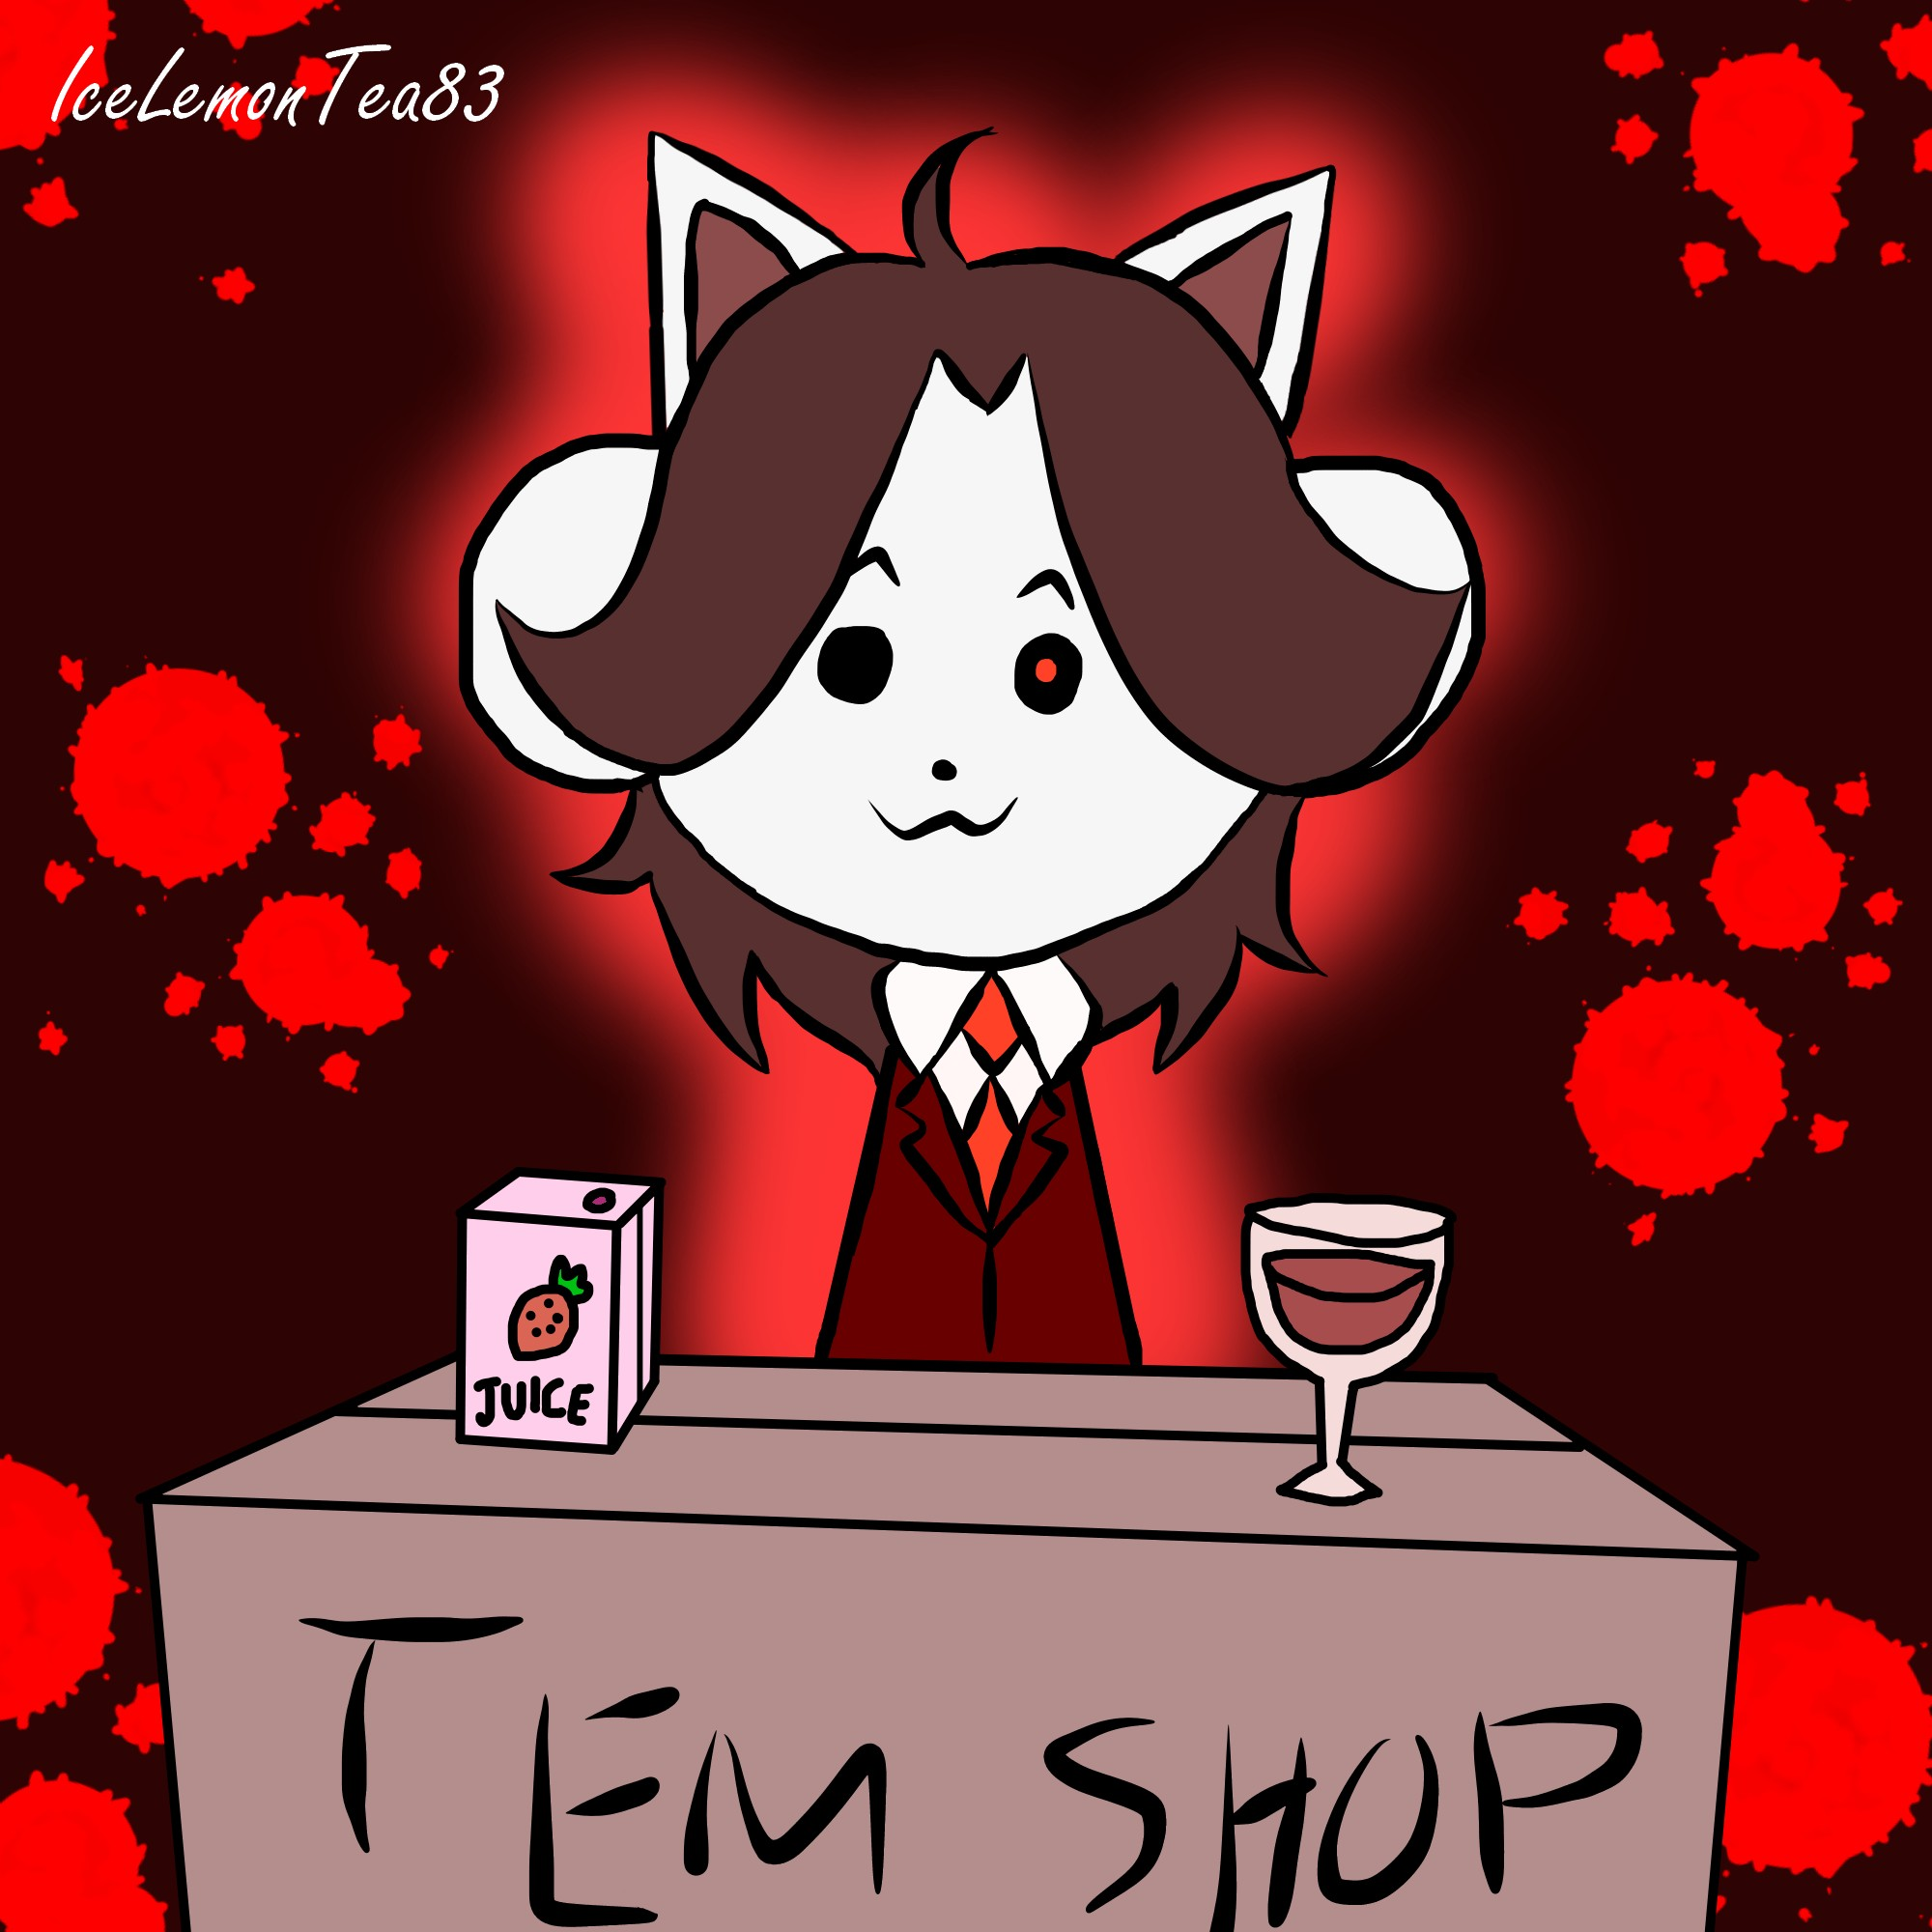 Temmie wallpaper ·① Download free HD backgrounds for